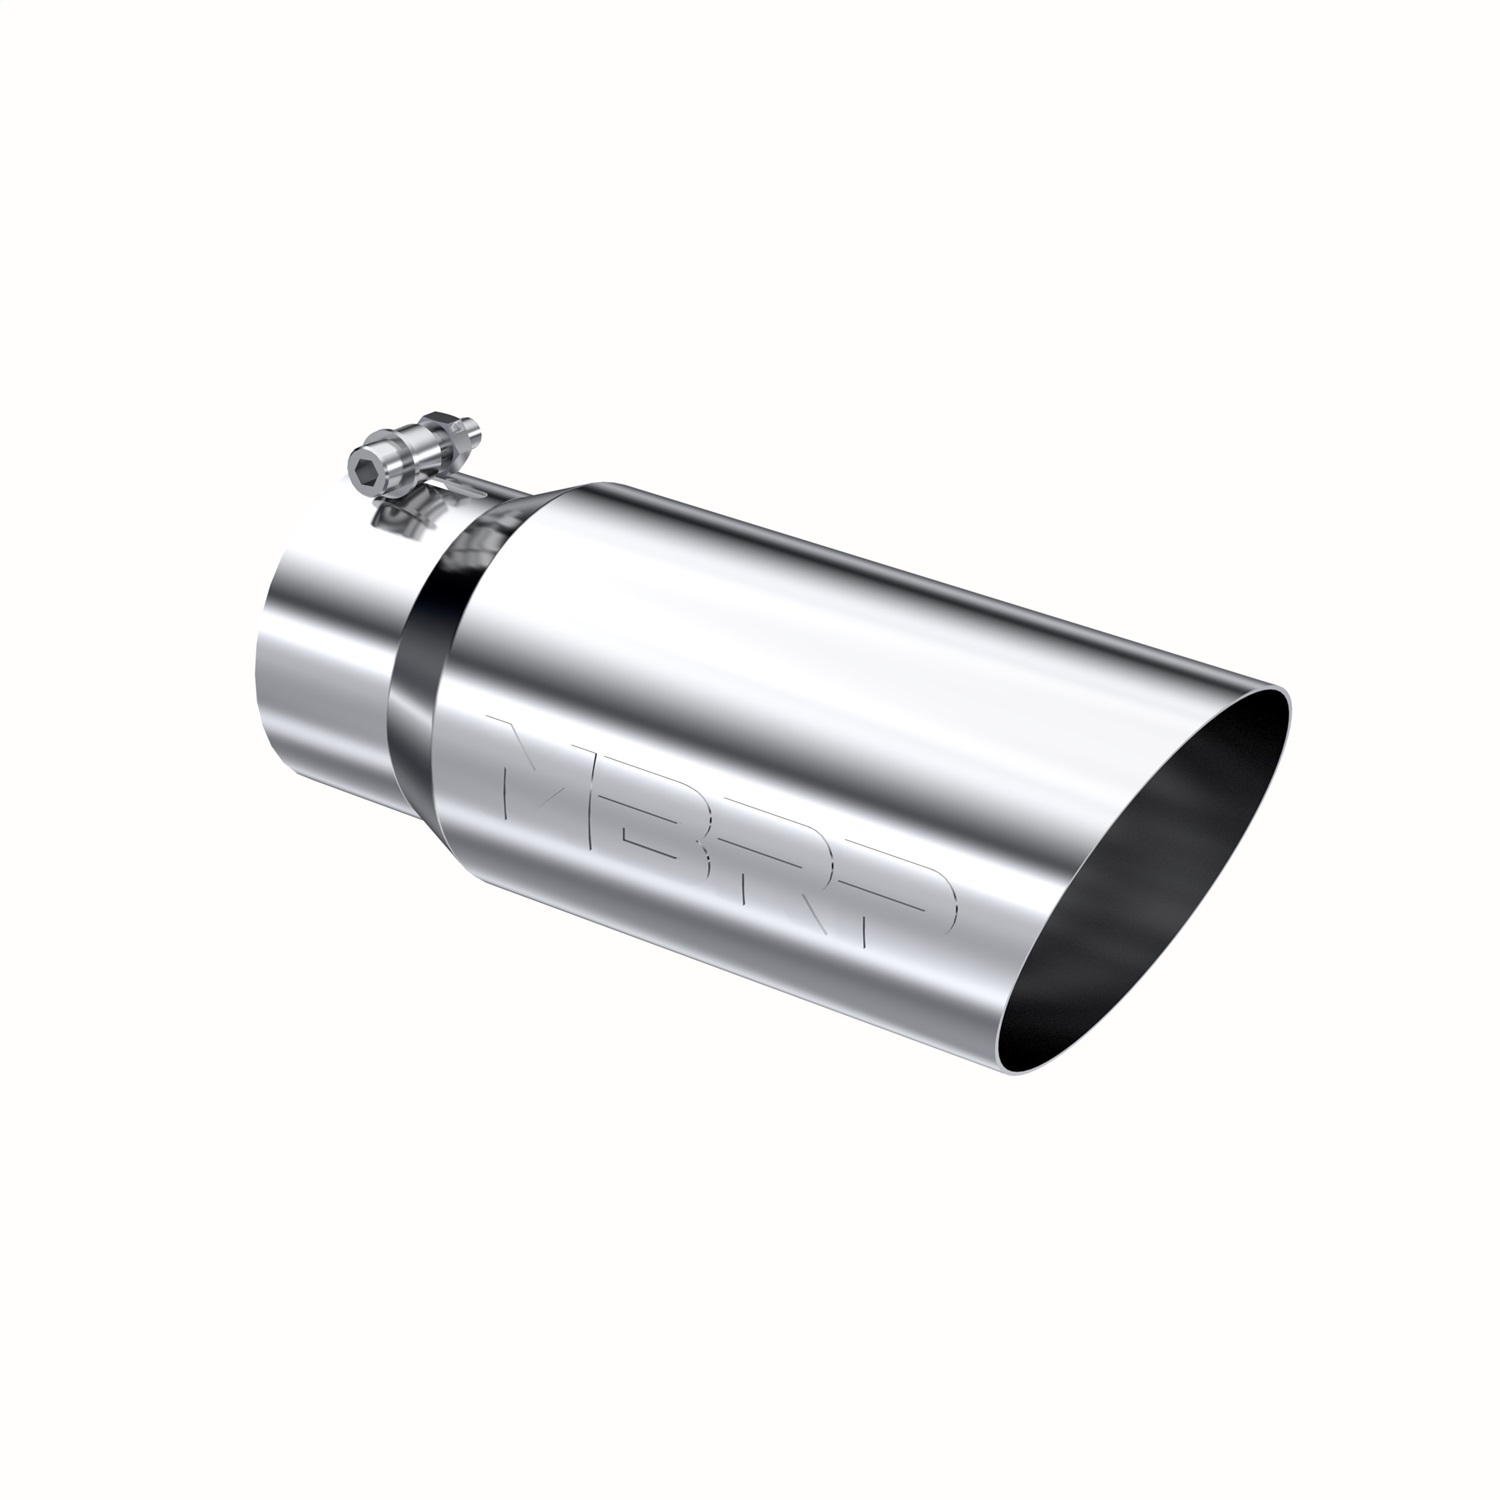 MBRP Exhaust Exhaust Tail Pipe Tip (T5052)